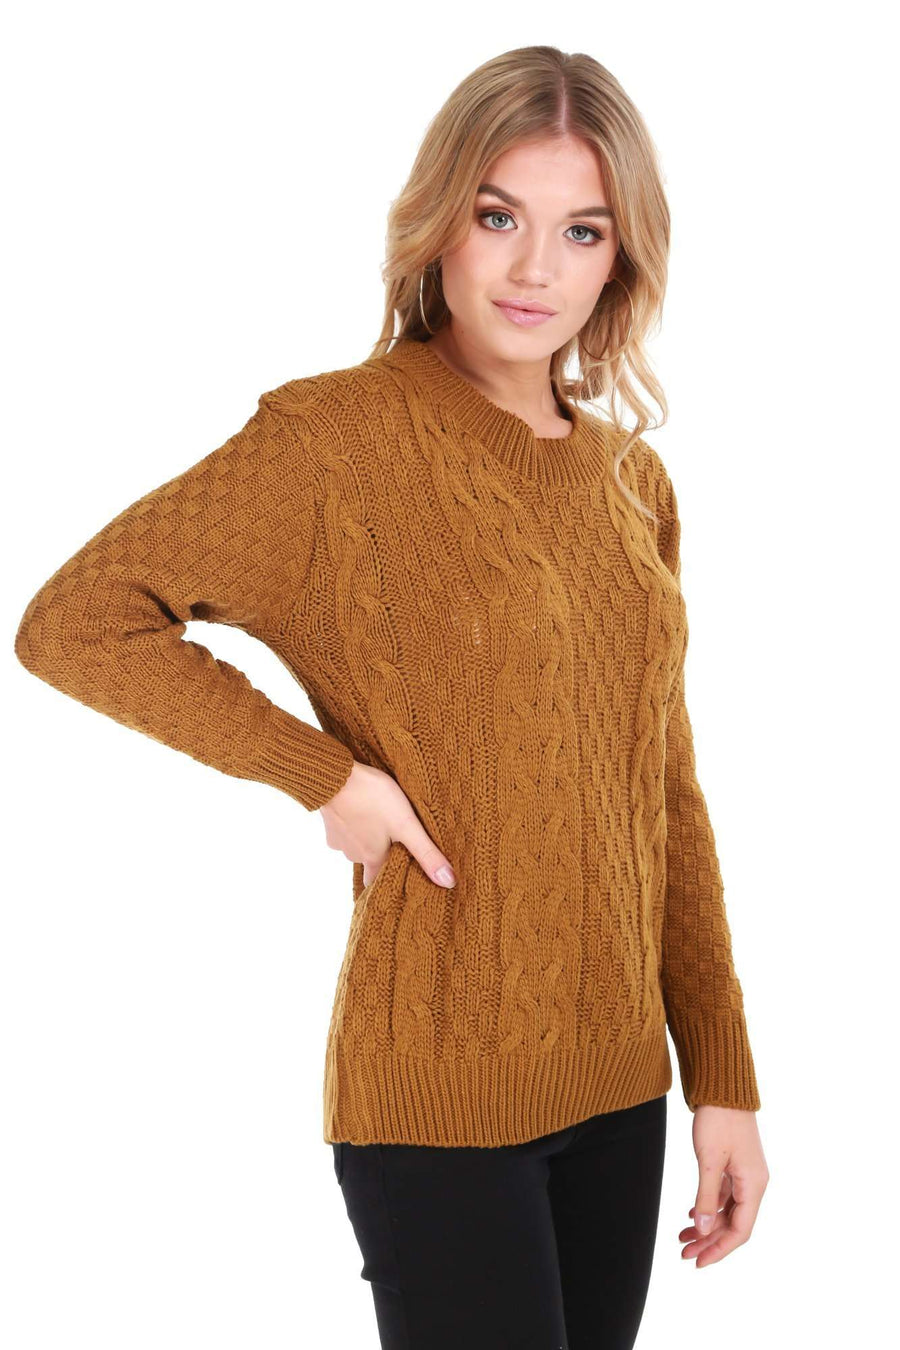 Sally Long Sleeve Cable Knit Oversized Jumper - bejealous-com